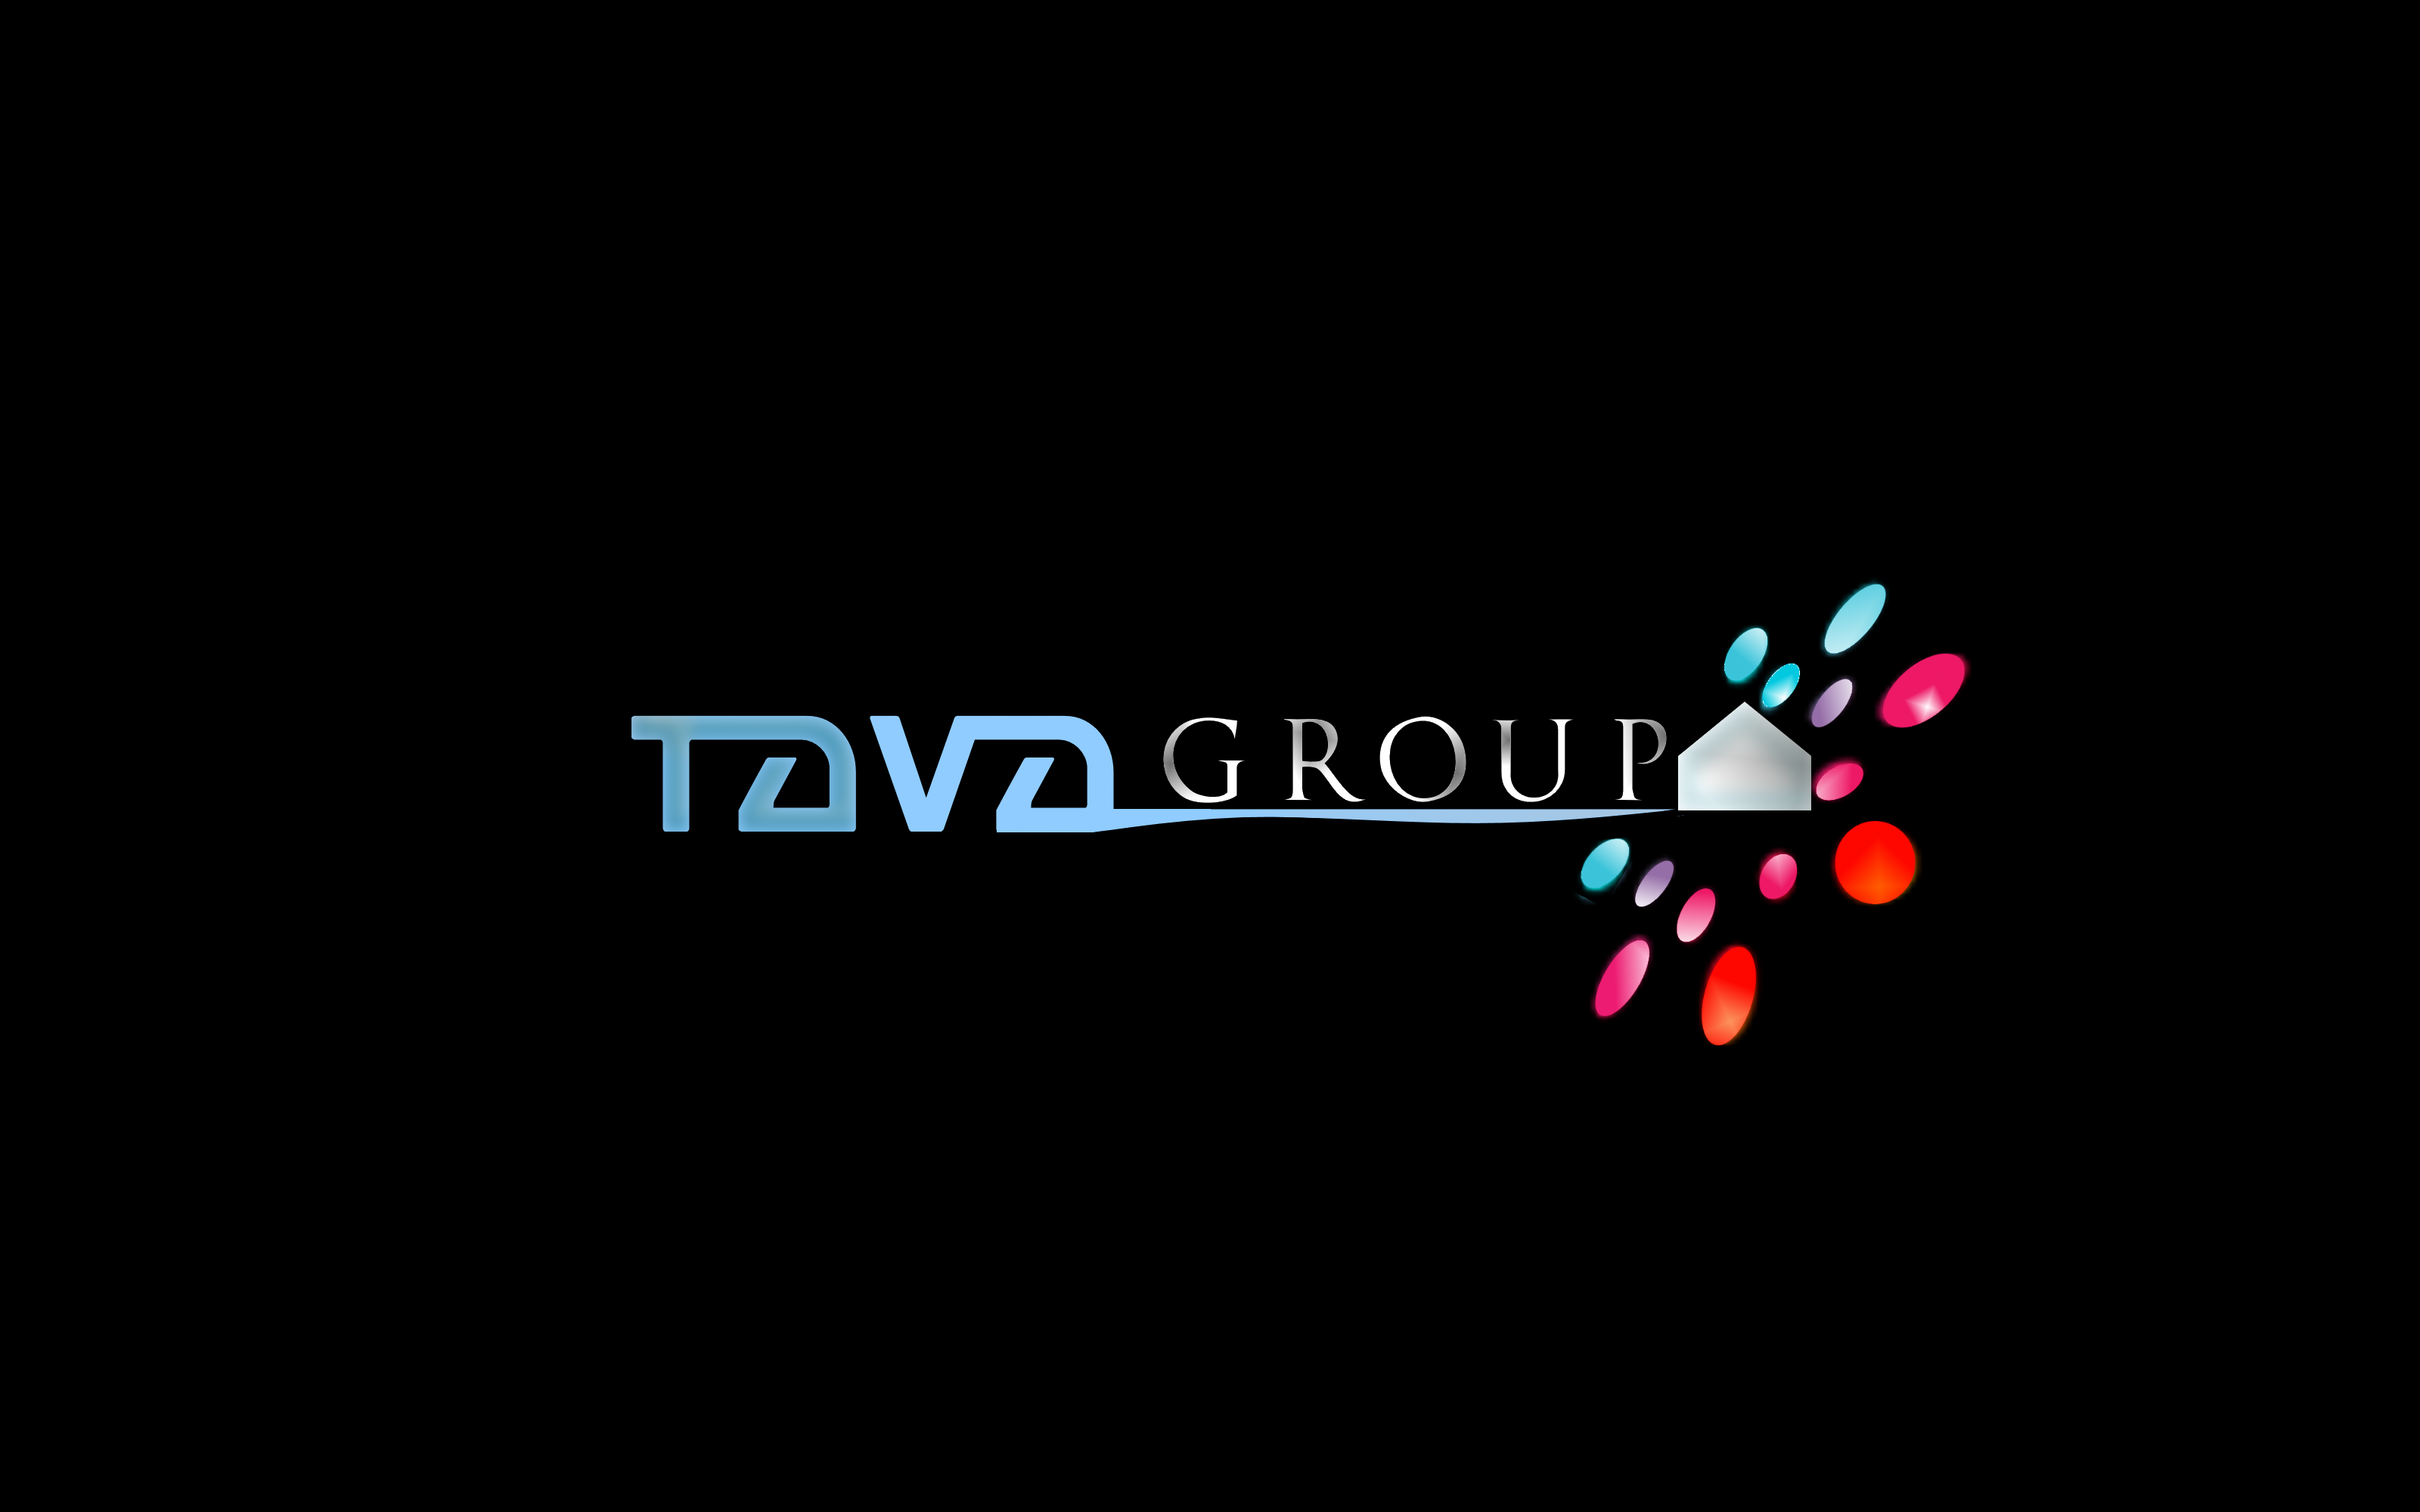 Logo Design by Roberto Bassi - Entry No. 210 in the Logo Design Contest Creative Logo Design for Tava Group.